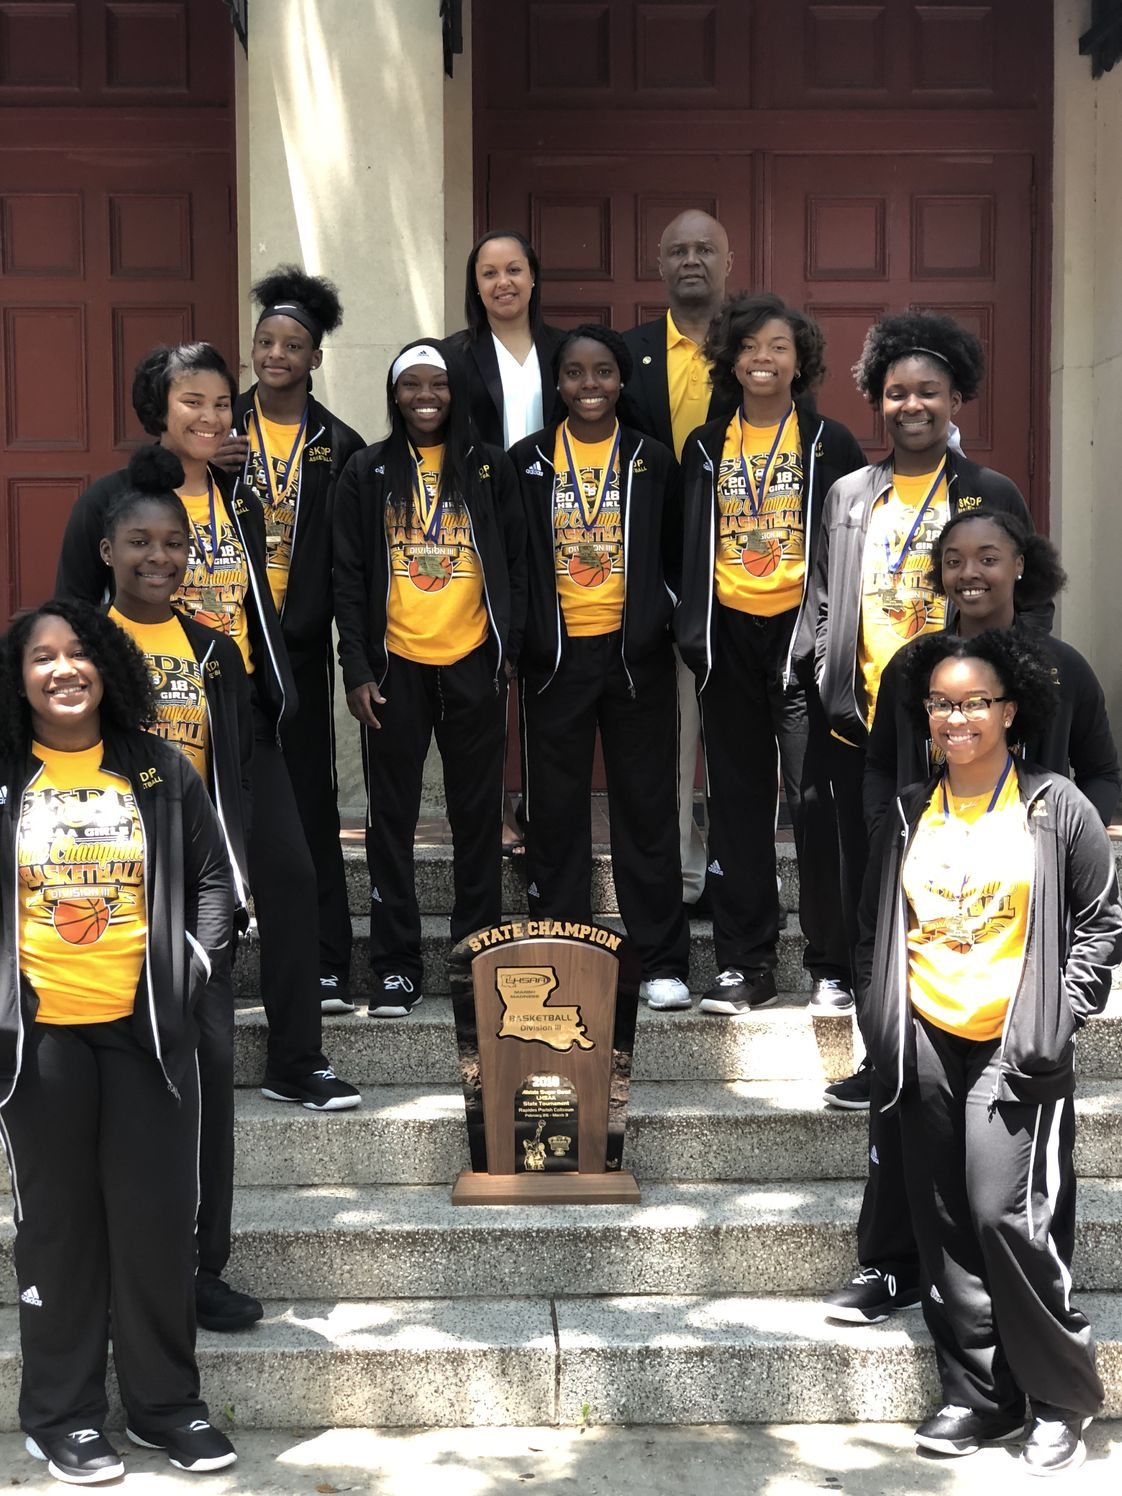 St. Katharine Drexel Preparatory School Photo - 2018 Basketball State Champions